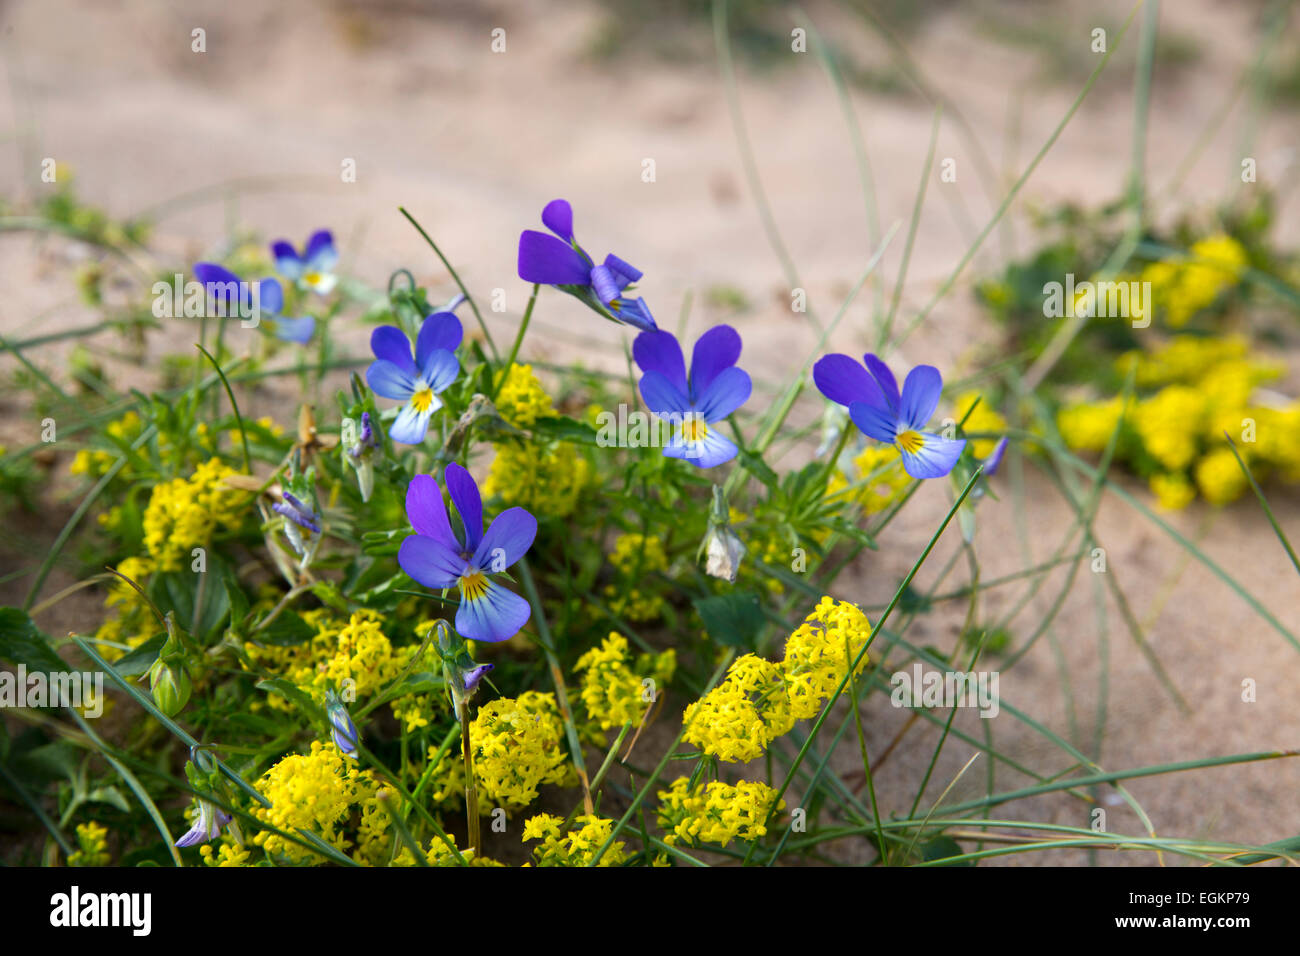 Pansy and Lady's Bedstraw; Viola tricolour and Galium verum Northumberland; UK - Stock Image